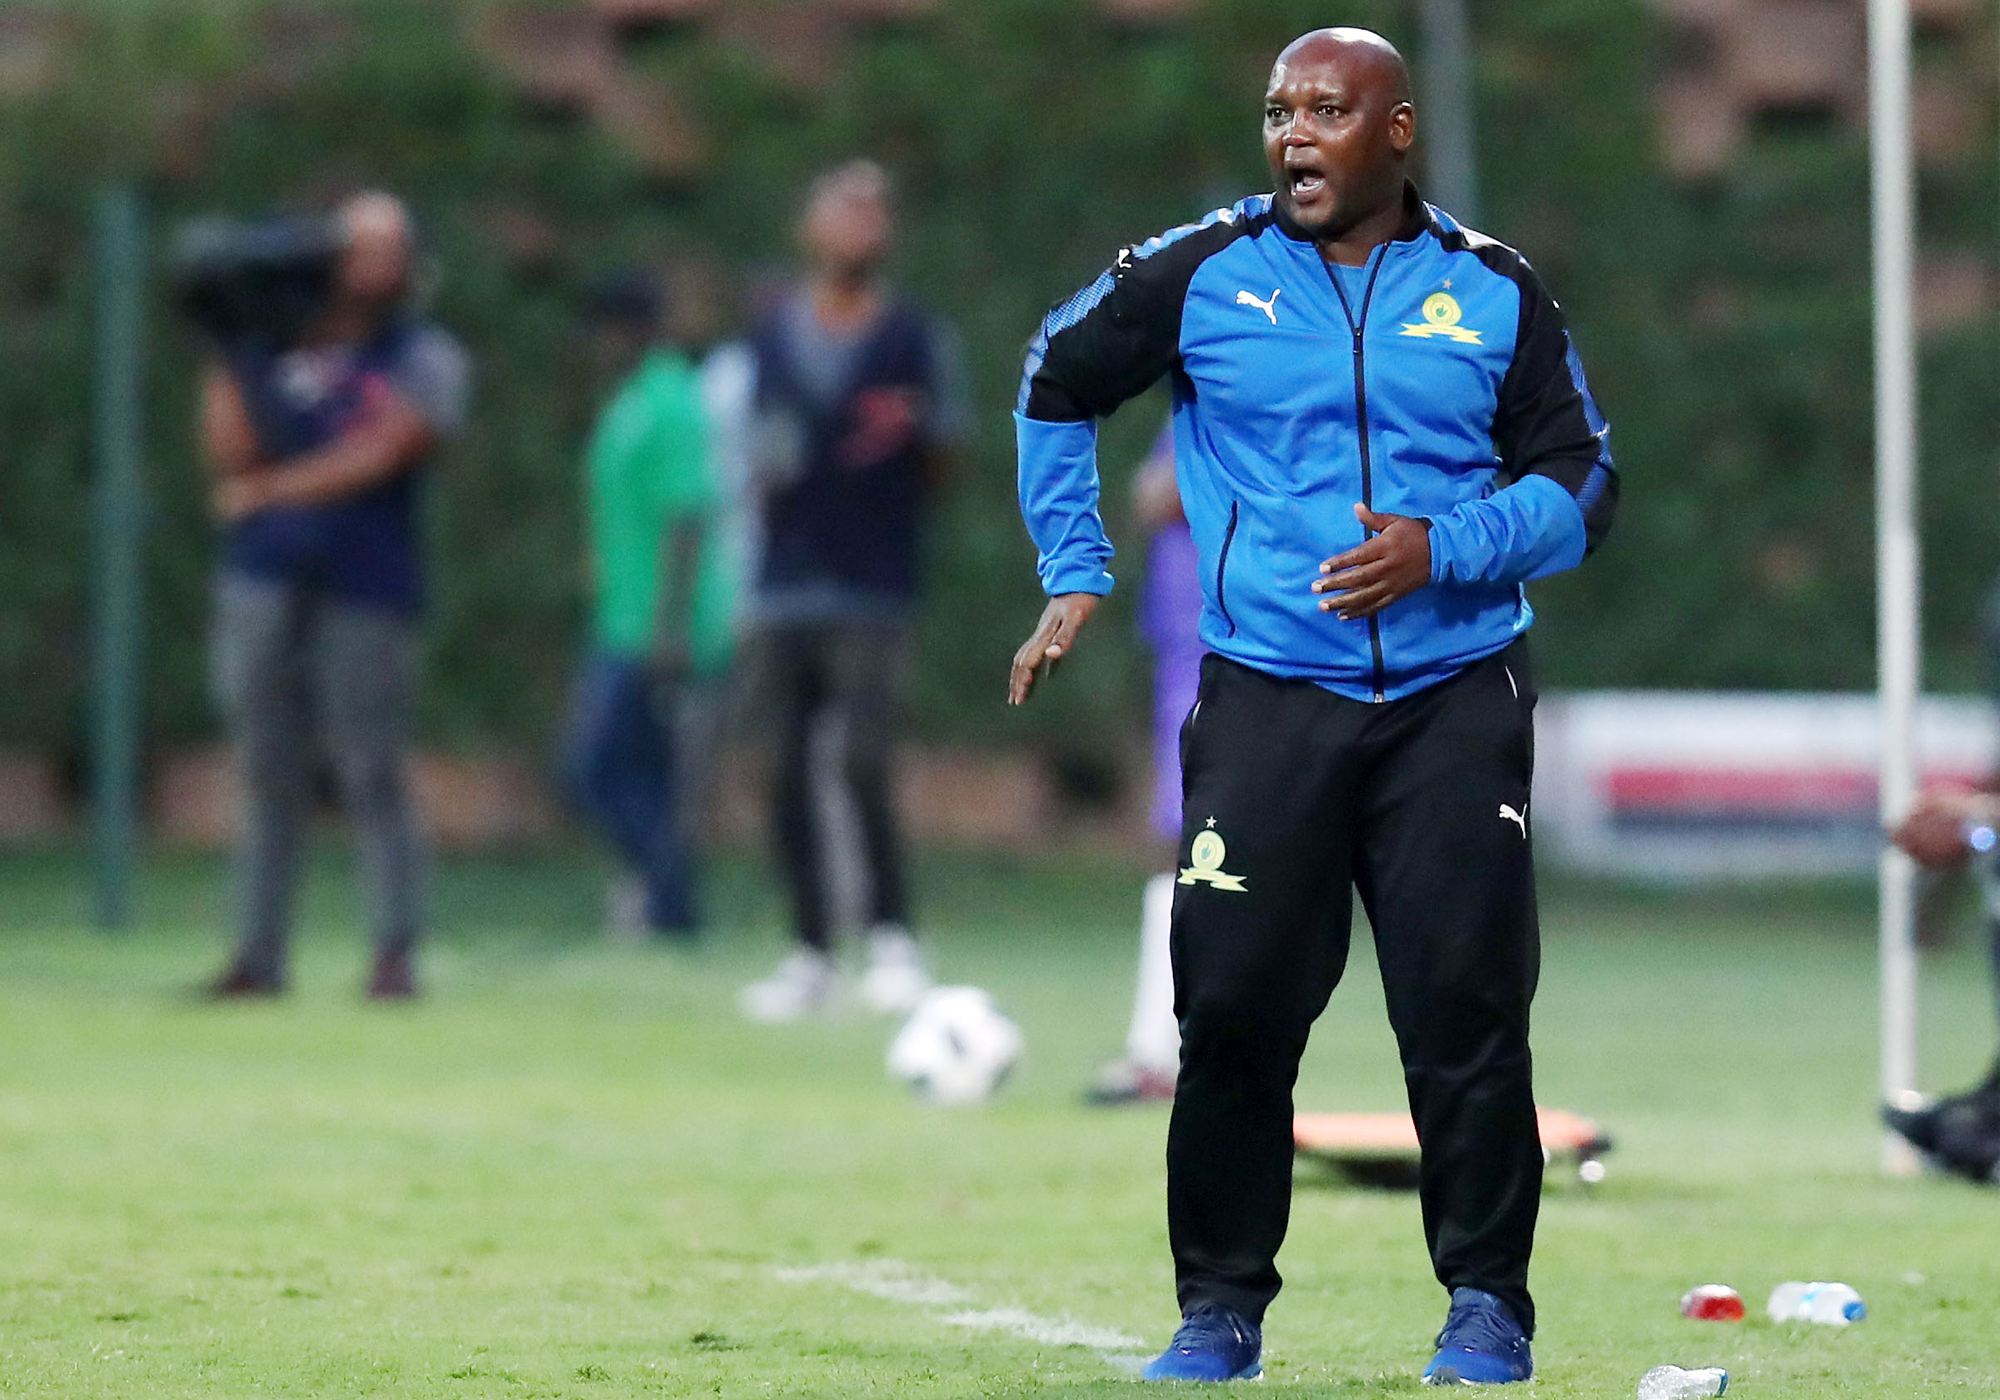 Mamelodi Sundowns Caf Champions League campaign started on the good note with coach Pitso Mosimane receiving an invitation from Caf s President Ahmad Ahmad